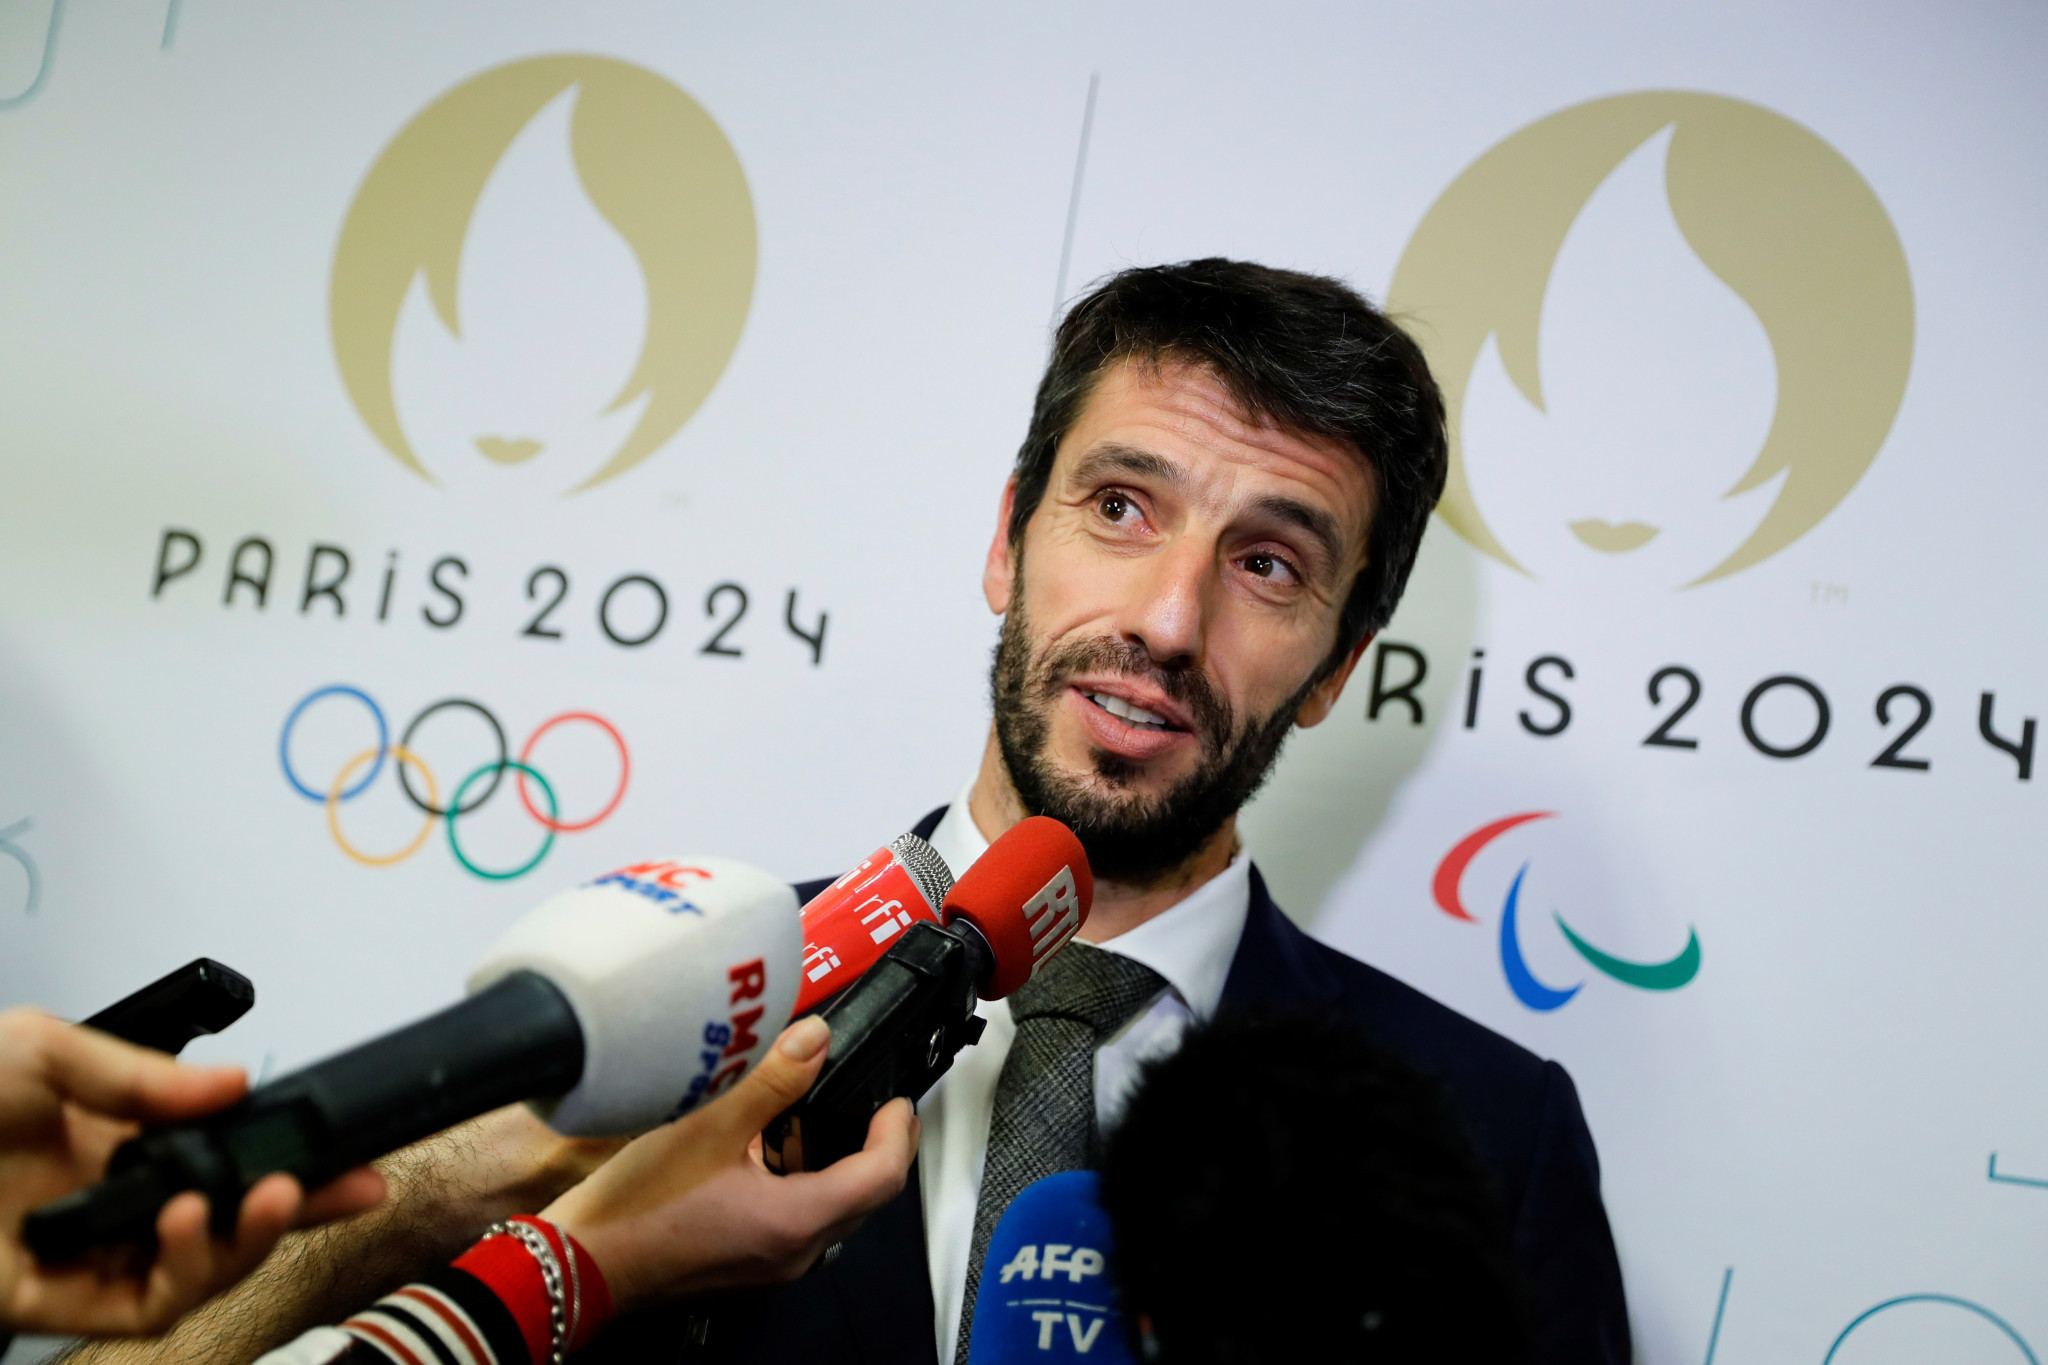 Paris 2024 President Tony Estanguet claimed the agreement with ANS showed the